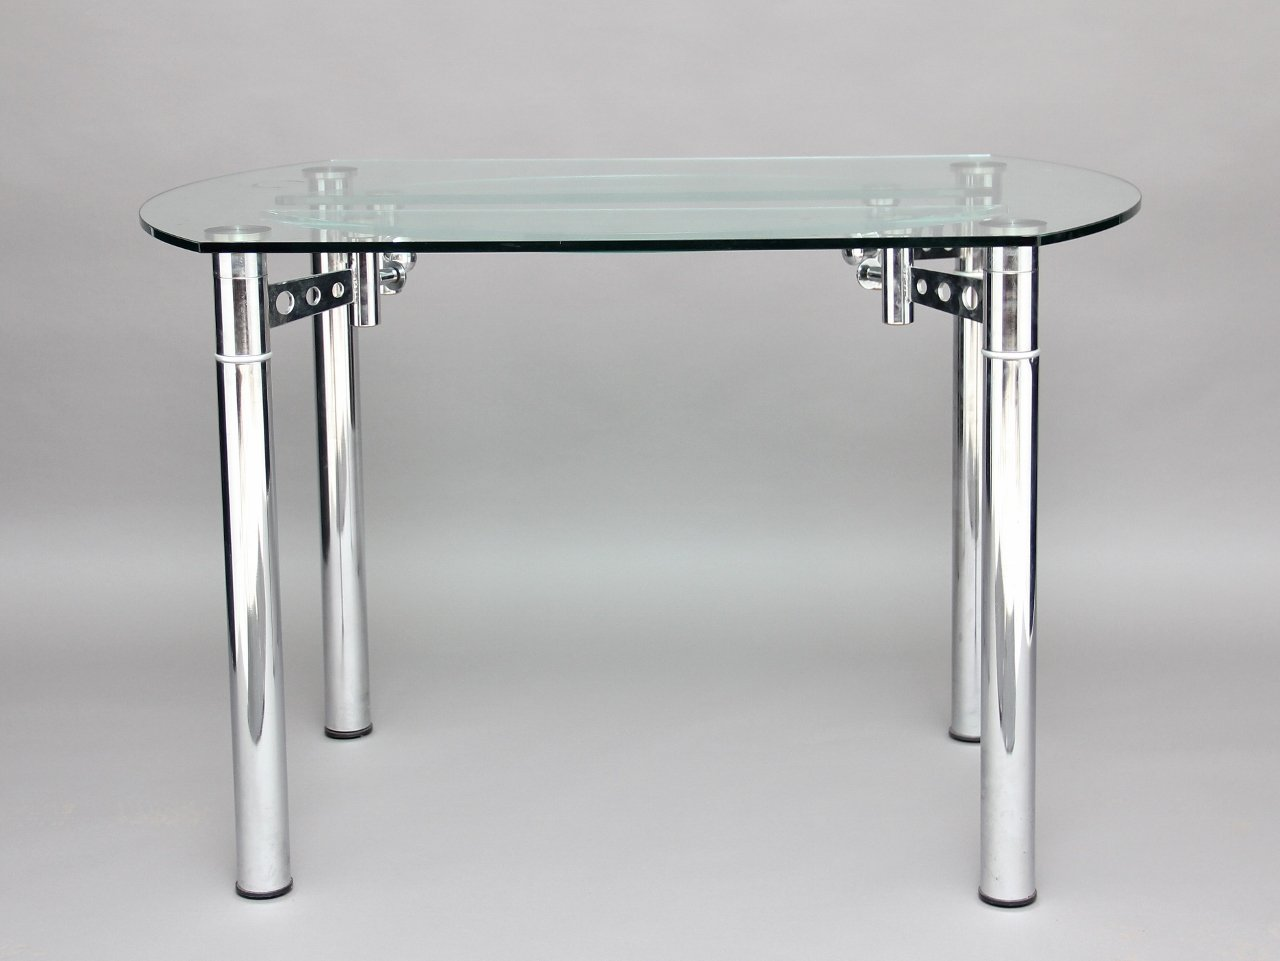 Vintage Chrome and Glass Dining Table